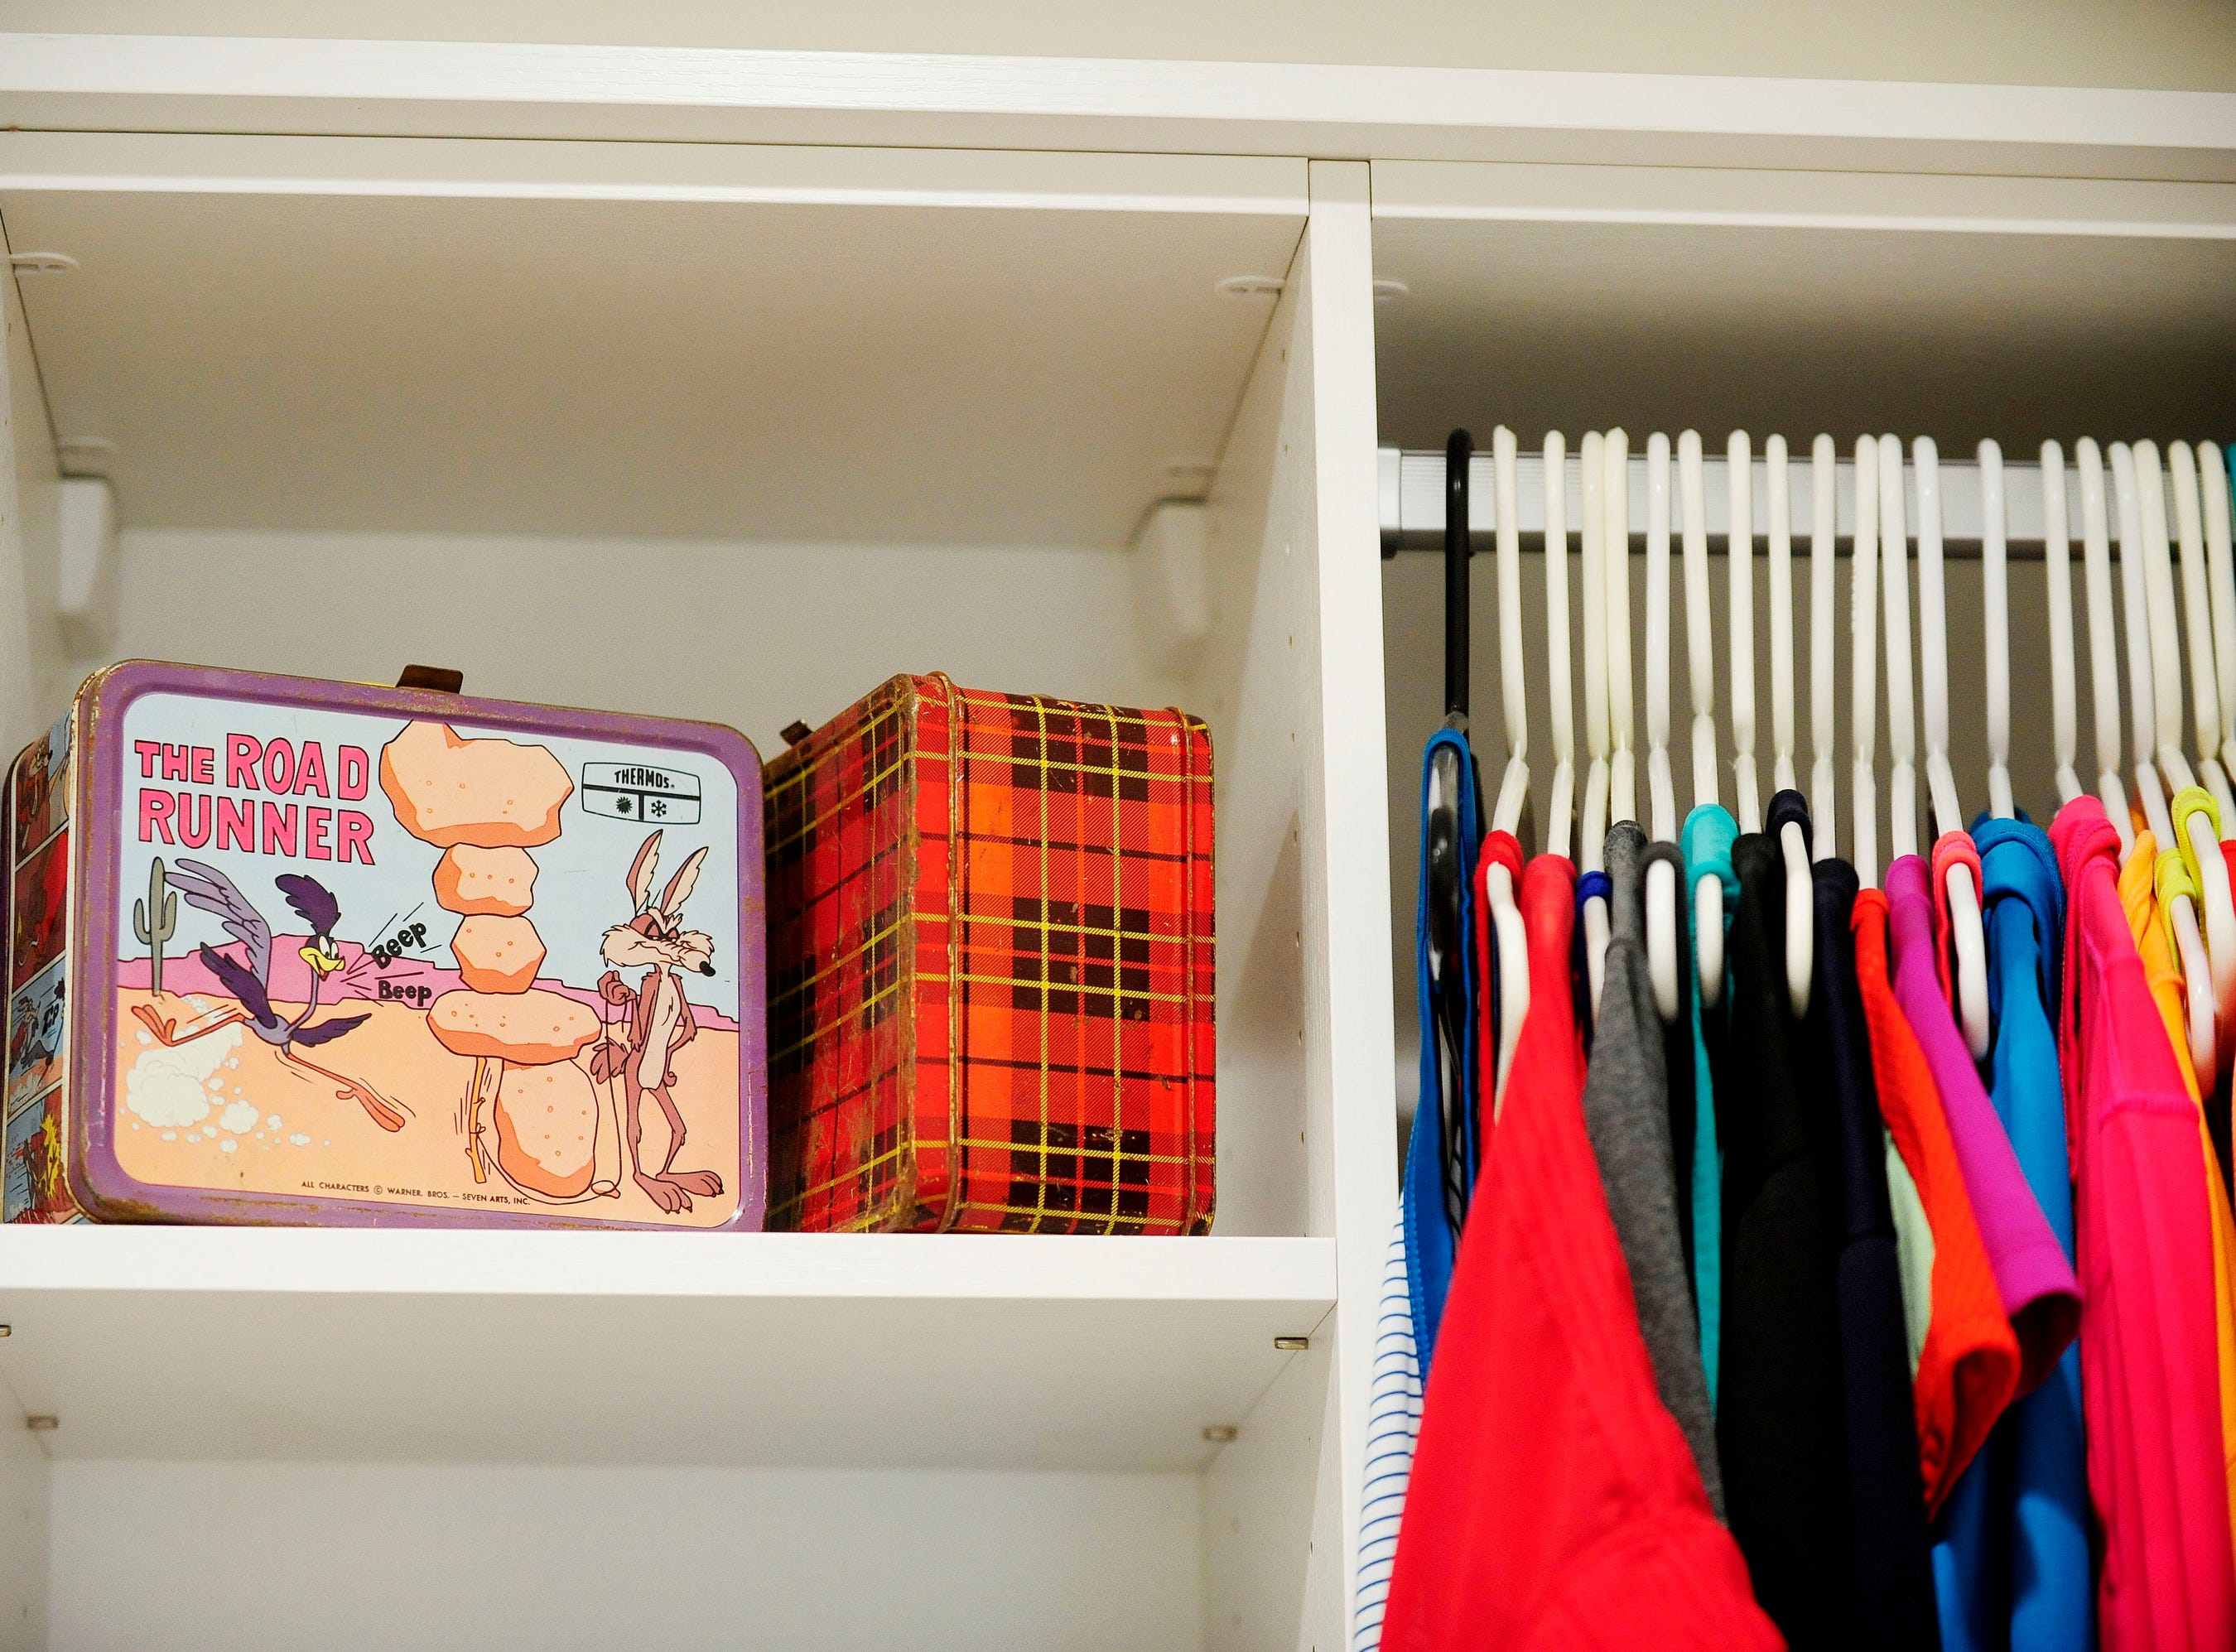 These childhood lunch boxes of Puthuff (at right) and her sister, Dianna (at left) help decorate the master bedroom walk-in closet.